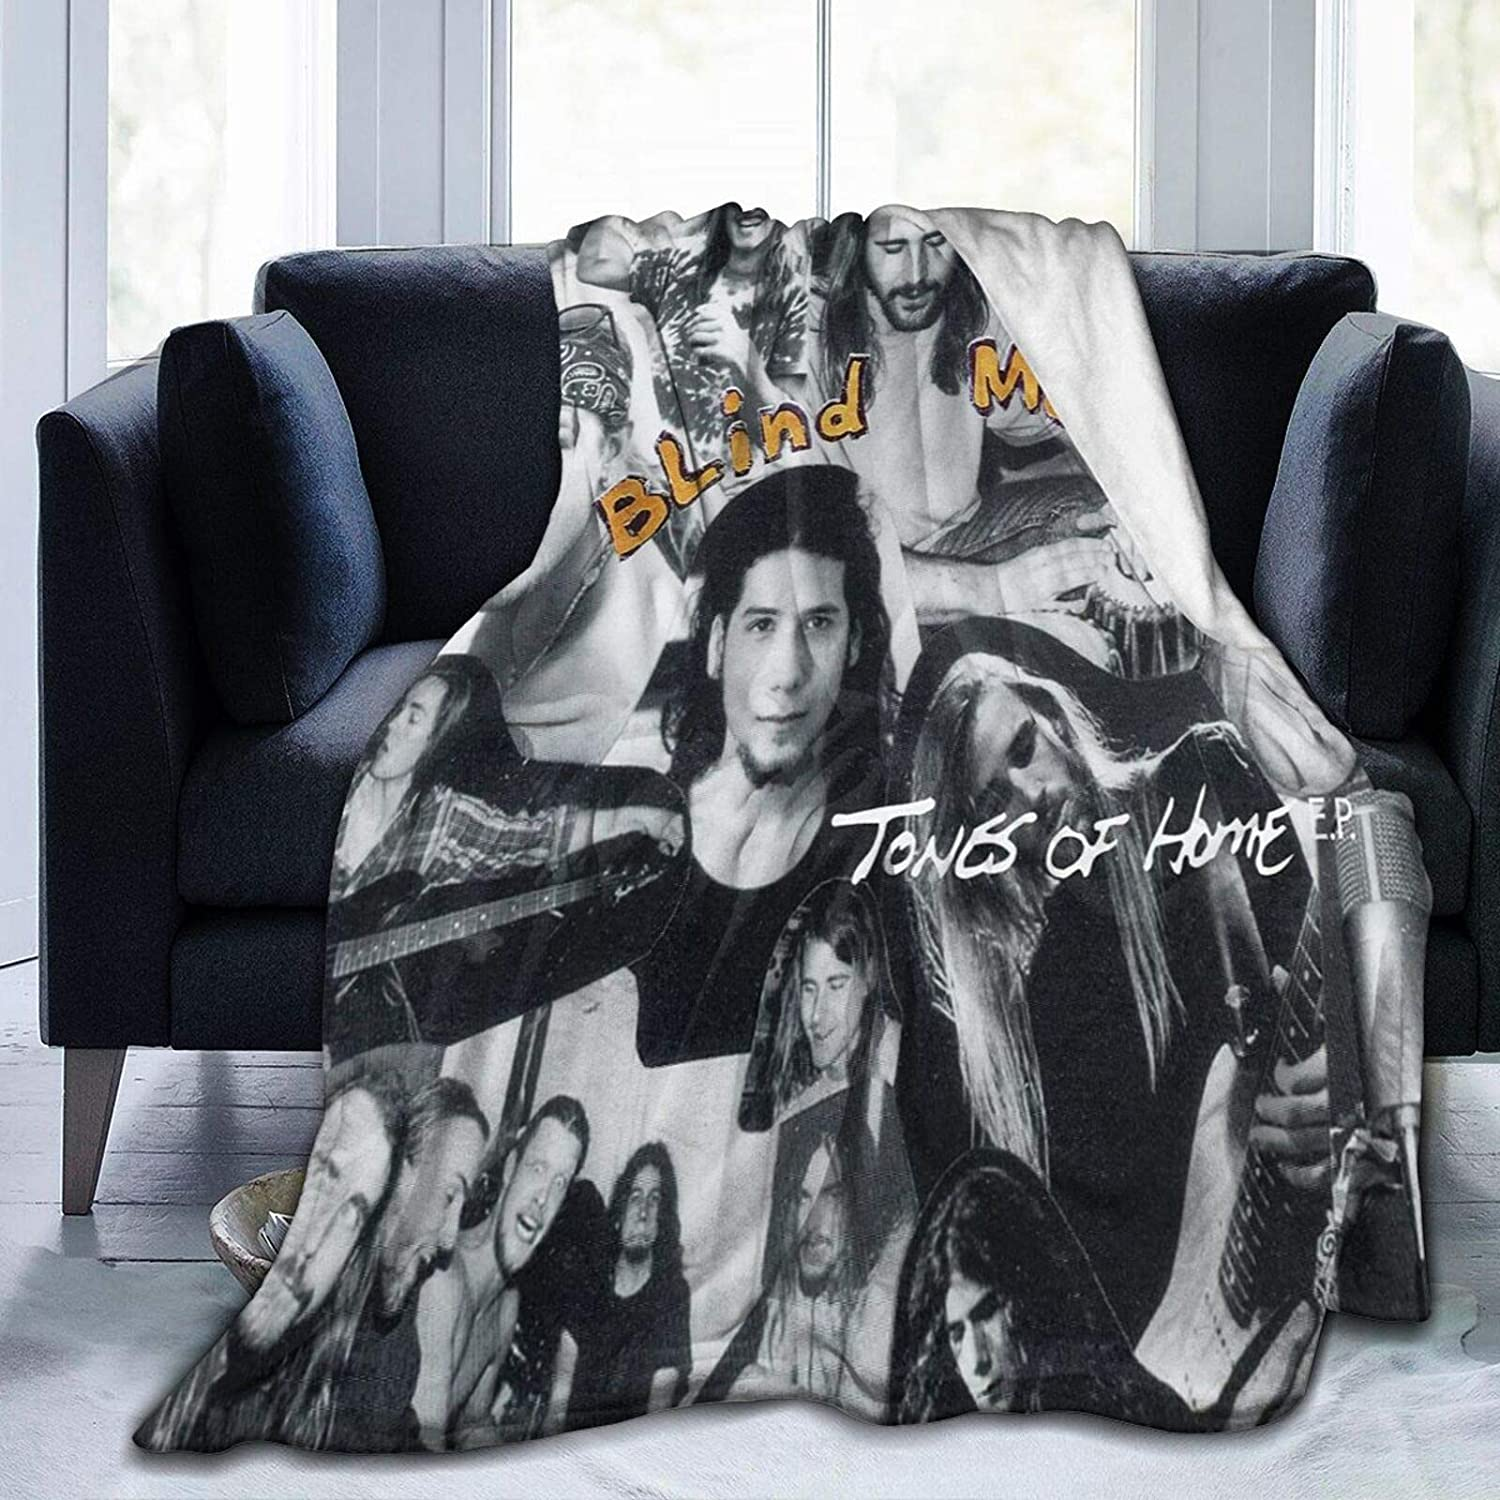 Blind Melon Tones of Home Ep Four Seasons Nap Warm Blankets,Fluffy Bed Blankets for Sofas,Lightweight Wool Blankets Novelty Blankets,Flannel Blankets,Comfortable Throwing Blankets